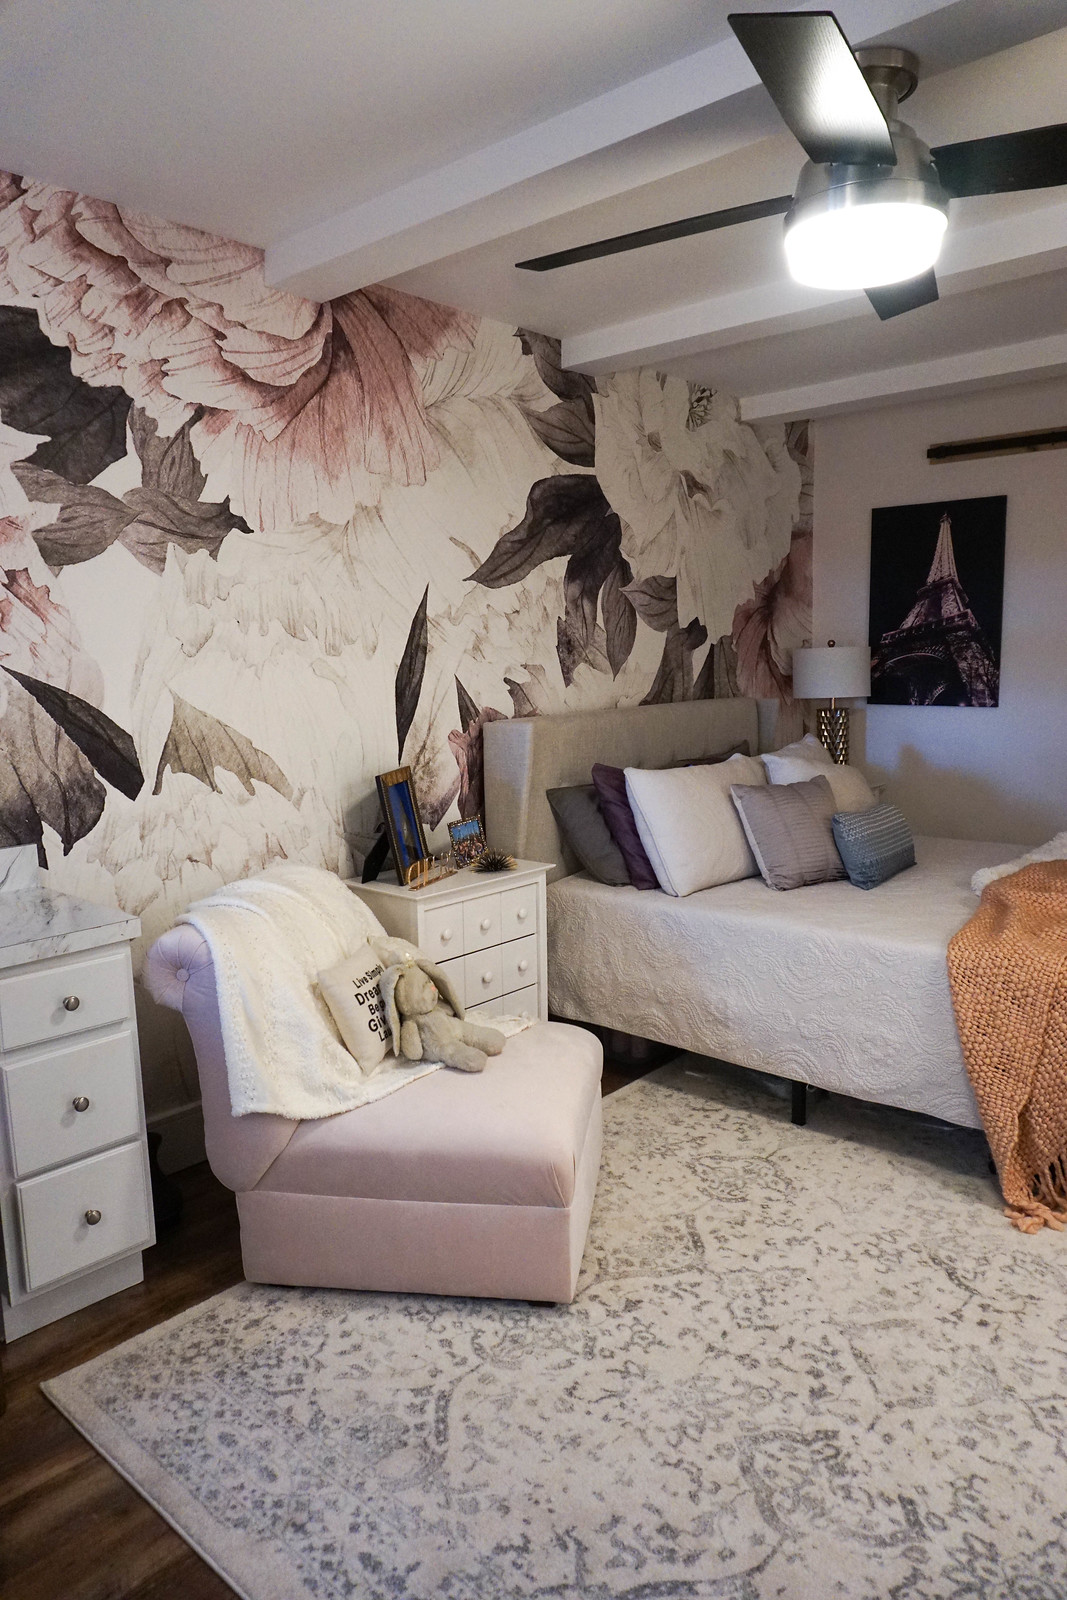 Anewall Blush Bouquet Wallpaper Mural Anthropologie Pink Velvet Chair nuLOOM Bosphorus Floral Ornament Rug Girly Bedroom